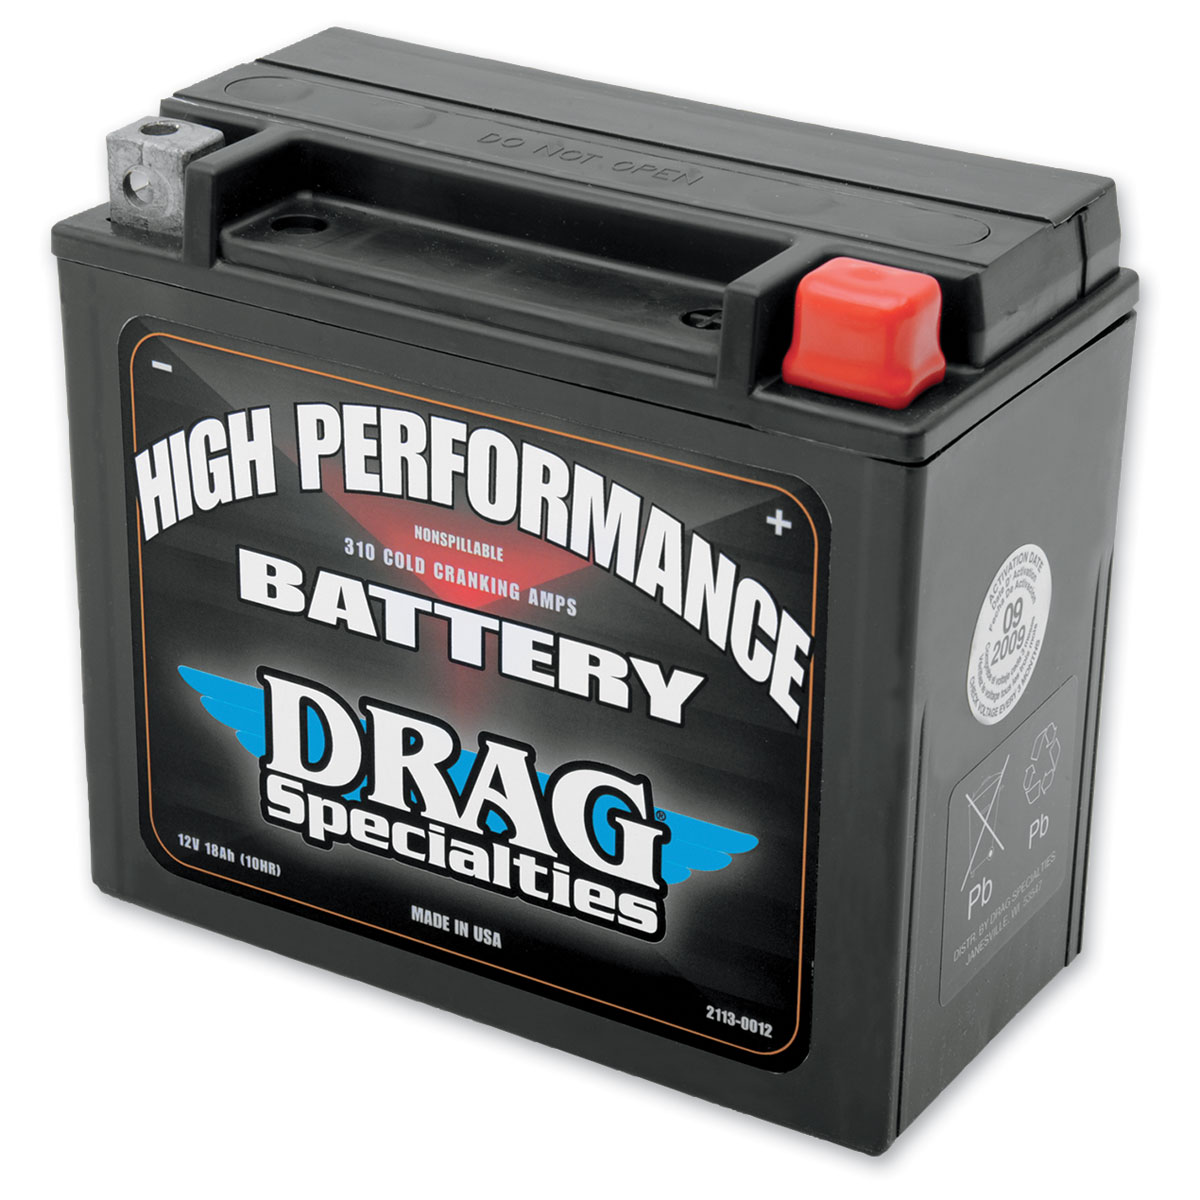 Drag Specialties High Performance Battery - 2113-0012 on